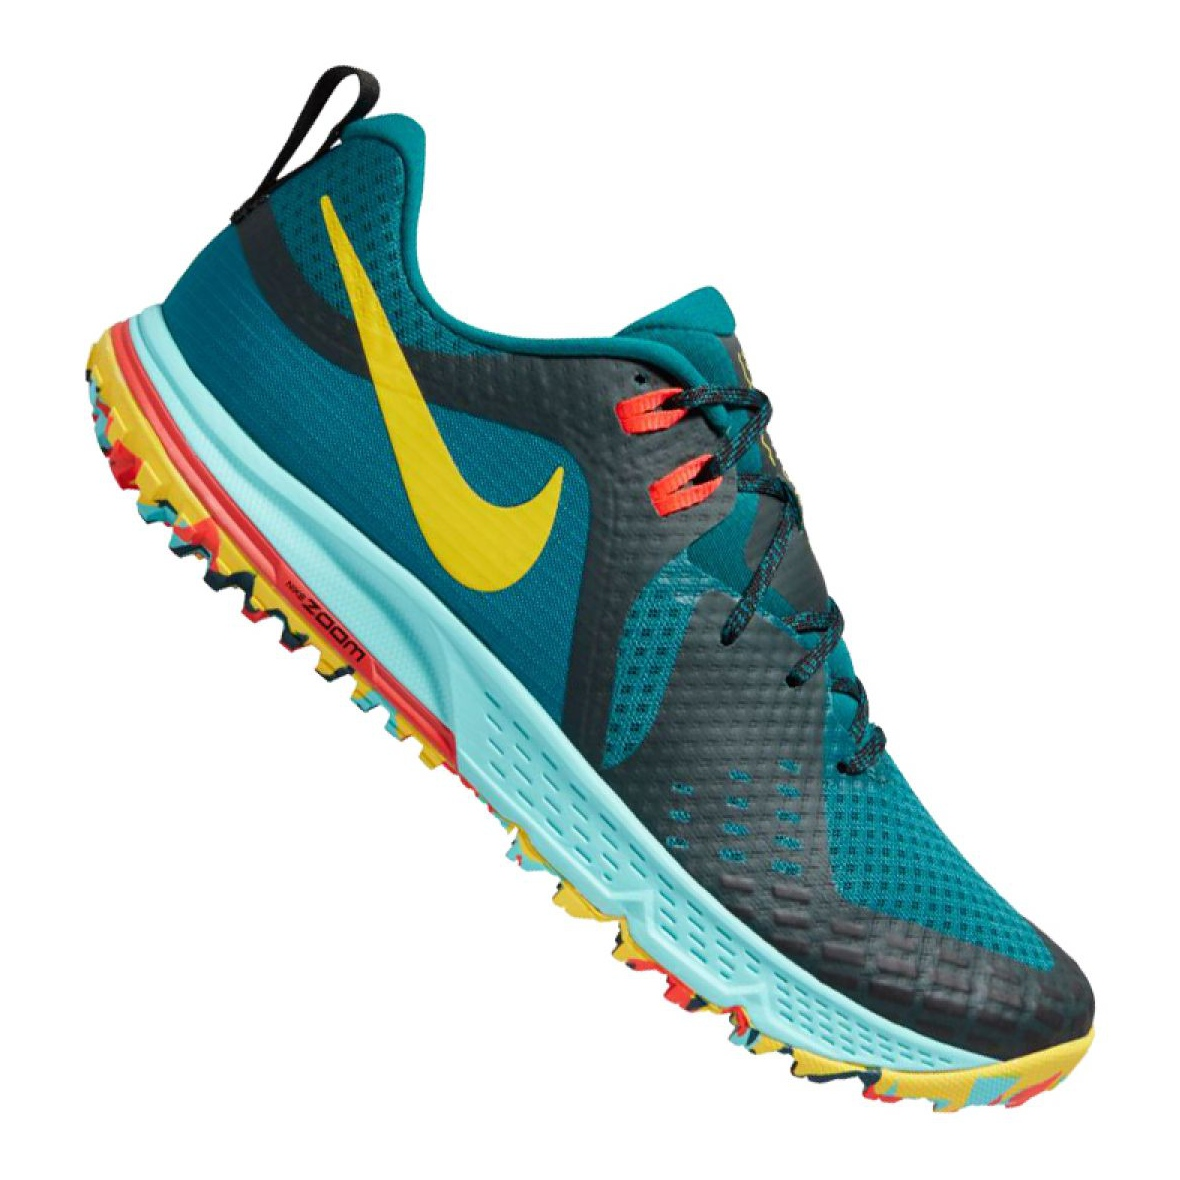 Dettagli su Chaussures de running Nike Air Zoom Wildhorse 5 M AQ2222 300 bleu